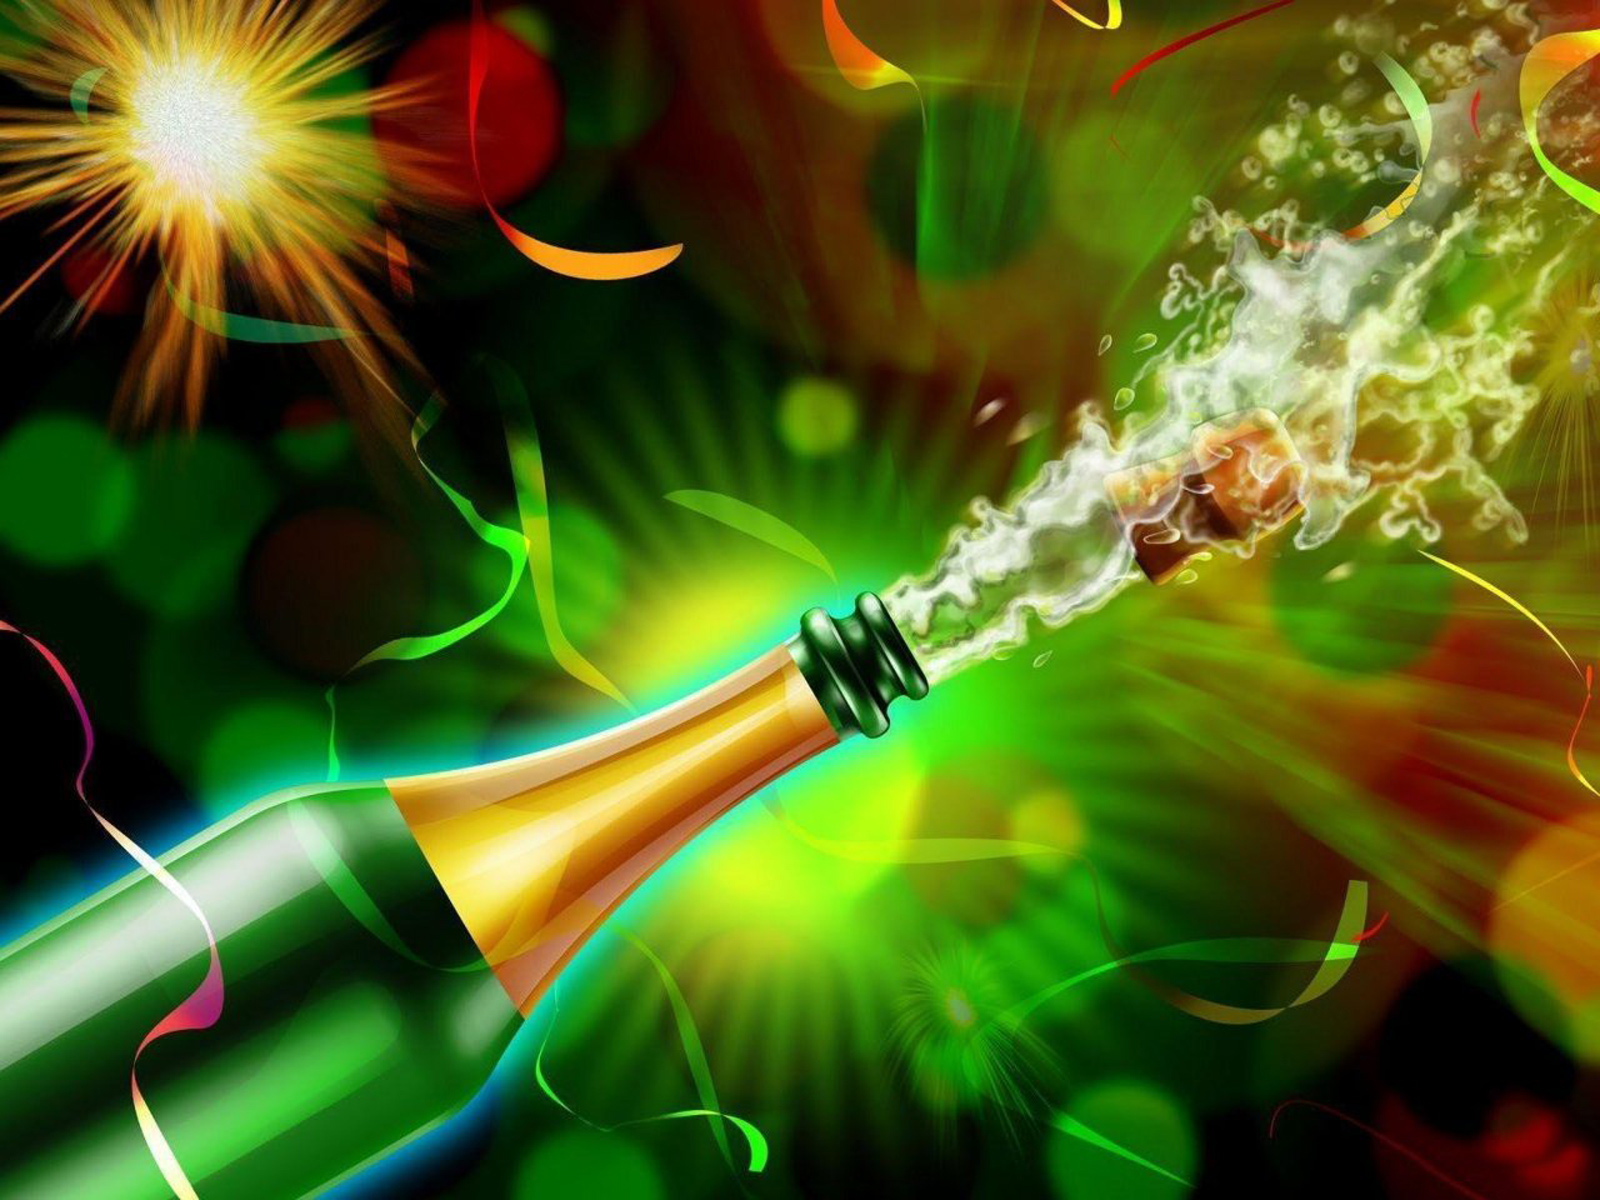 New Years Eve wallpaper  wallpaper free download 1600x1200